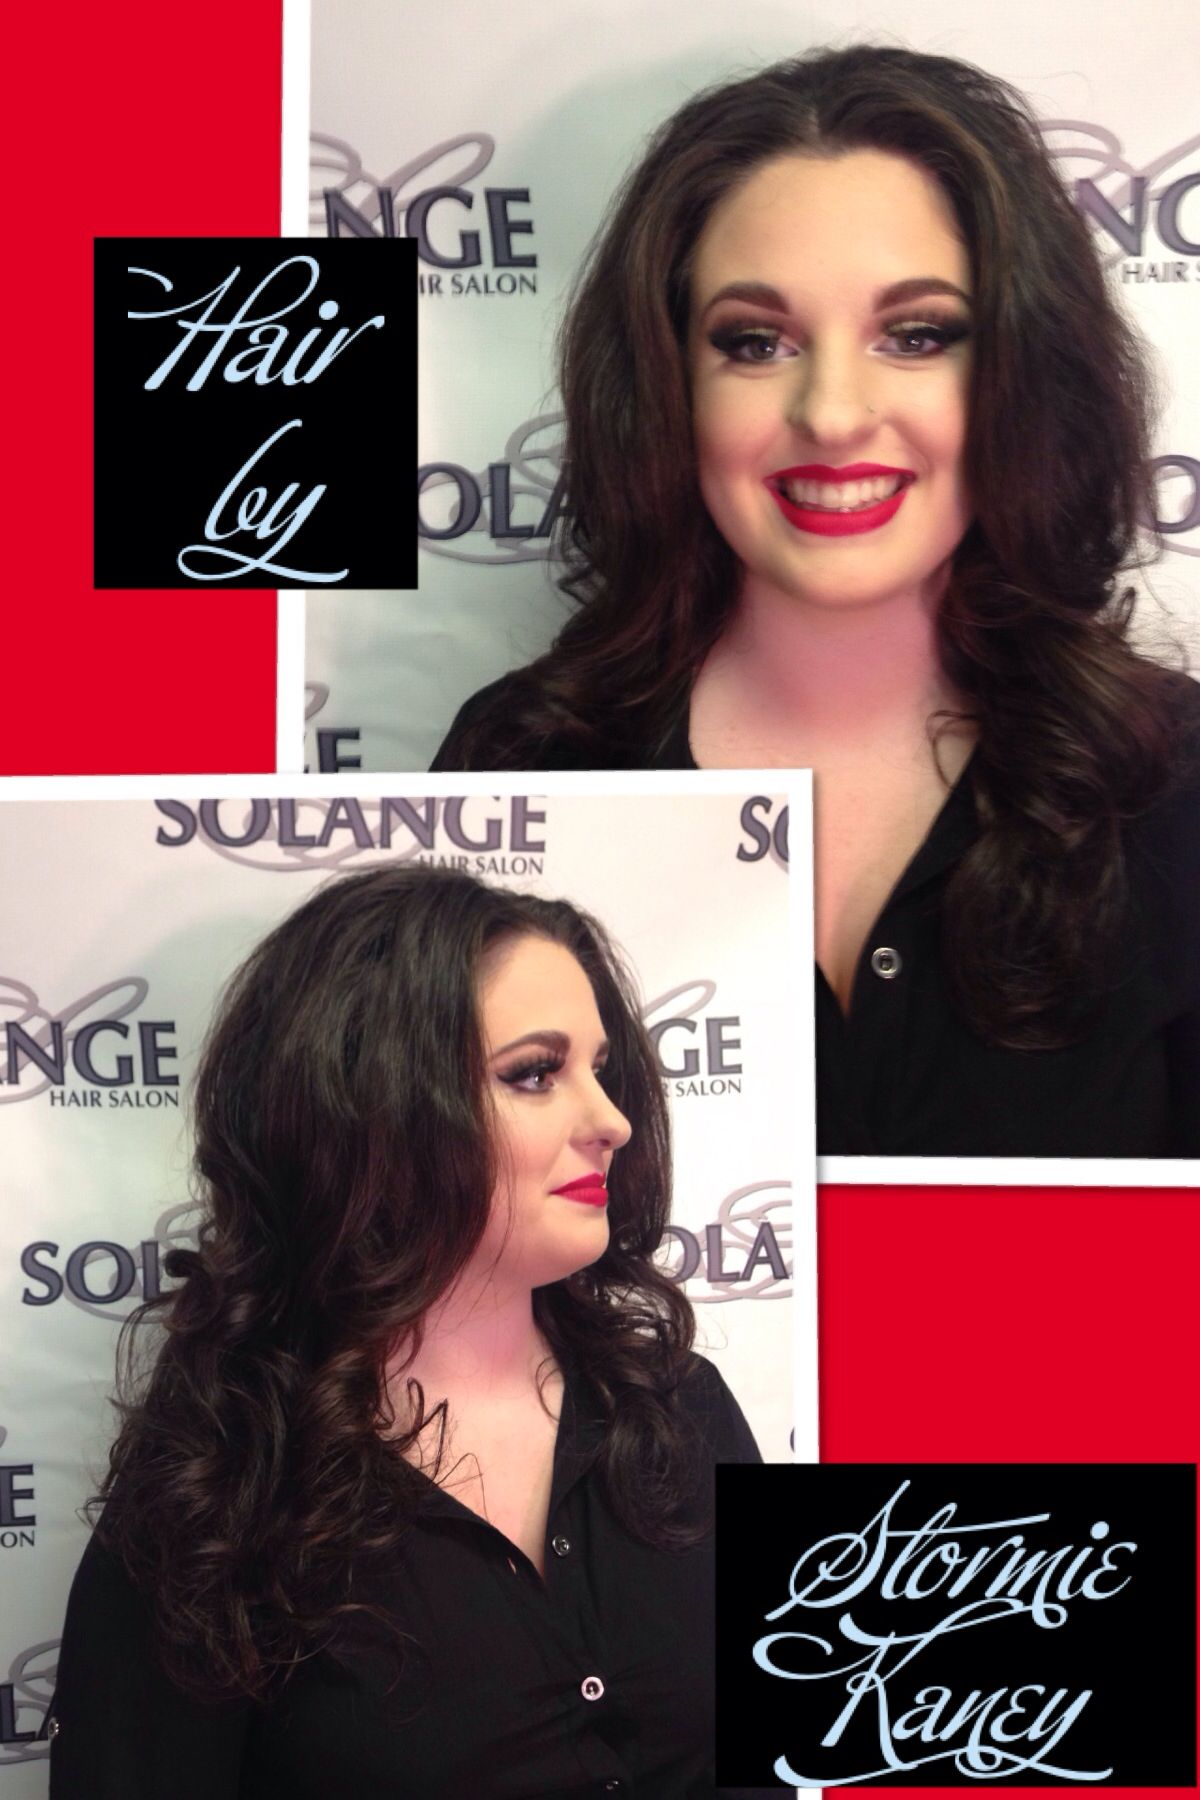 Hair By Stormie Kaney For Solange Salon Fayetteville Ar